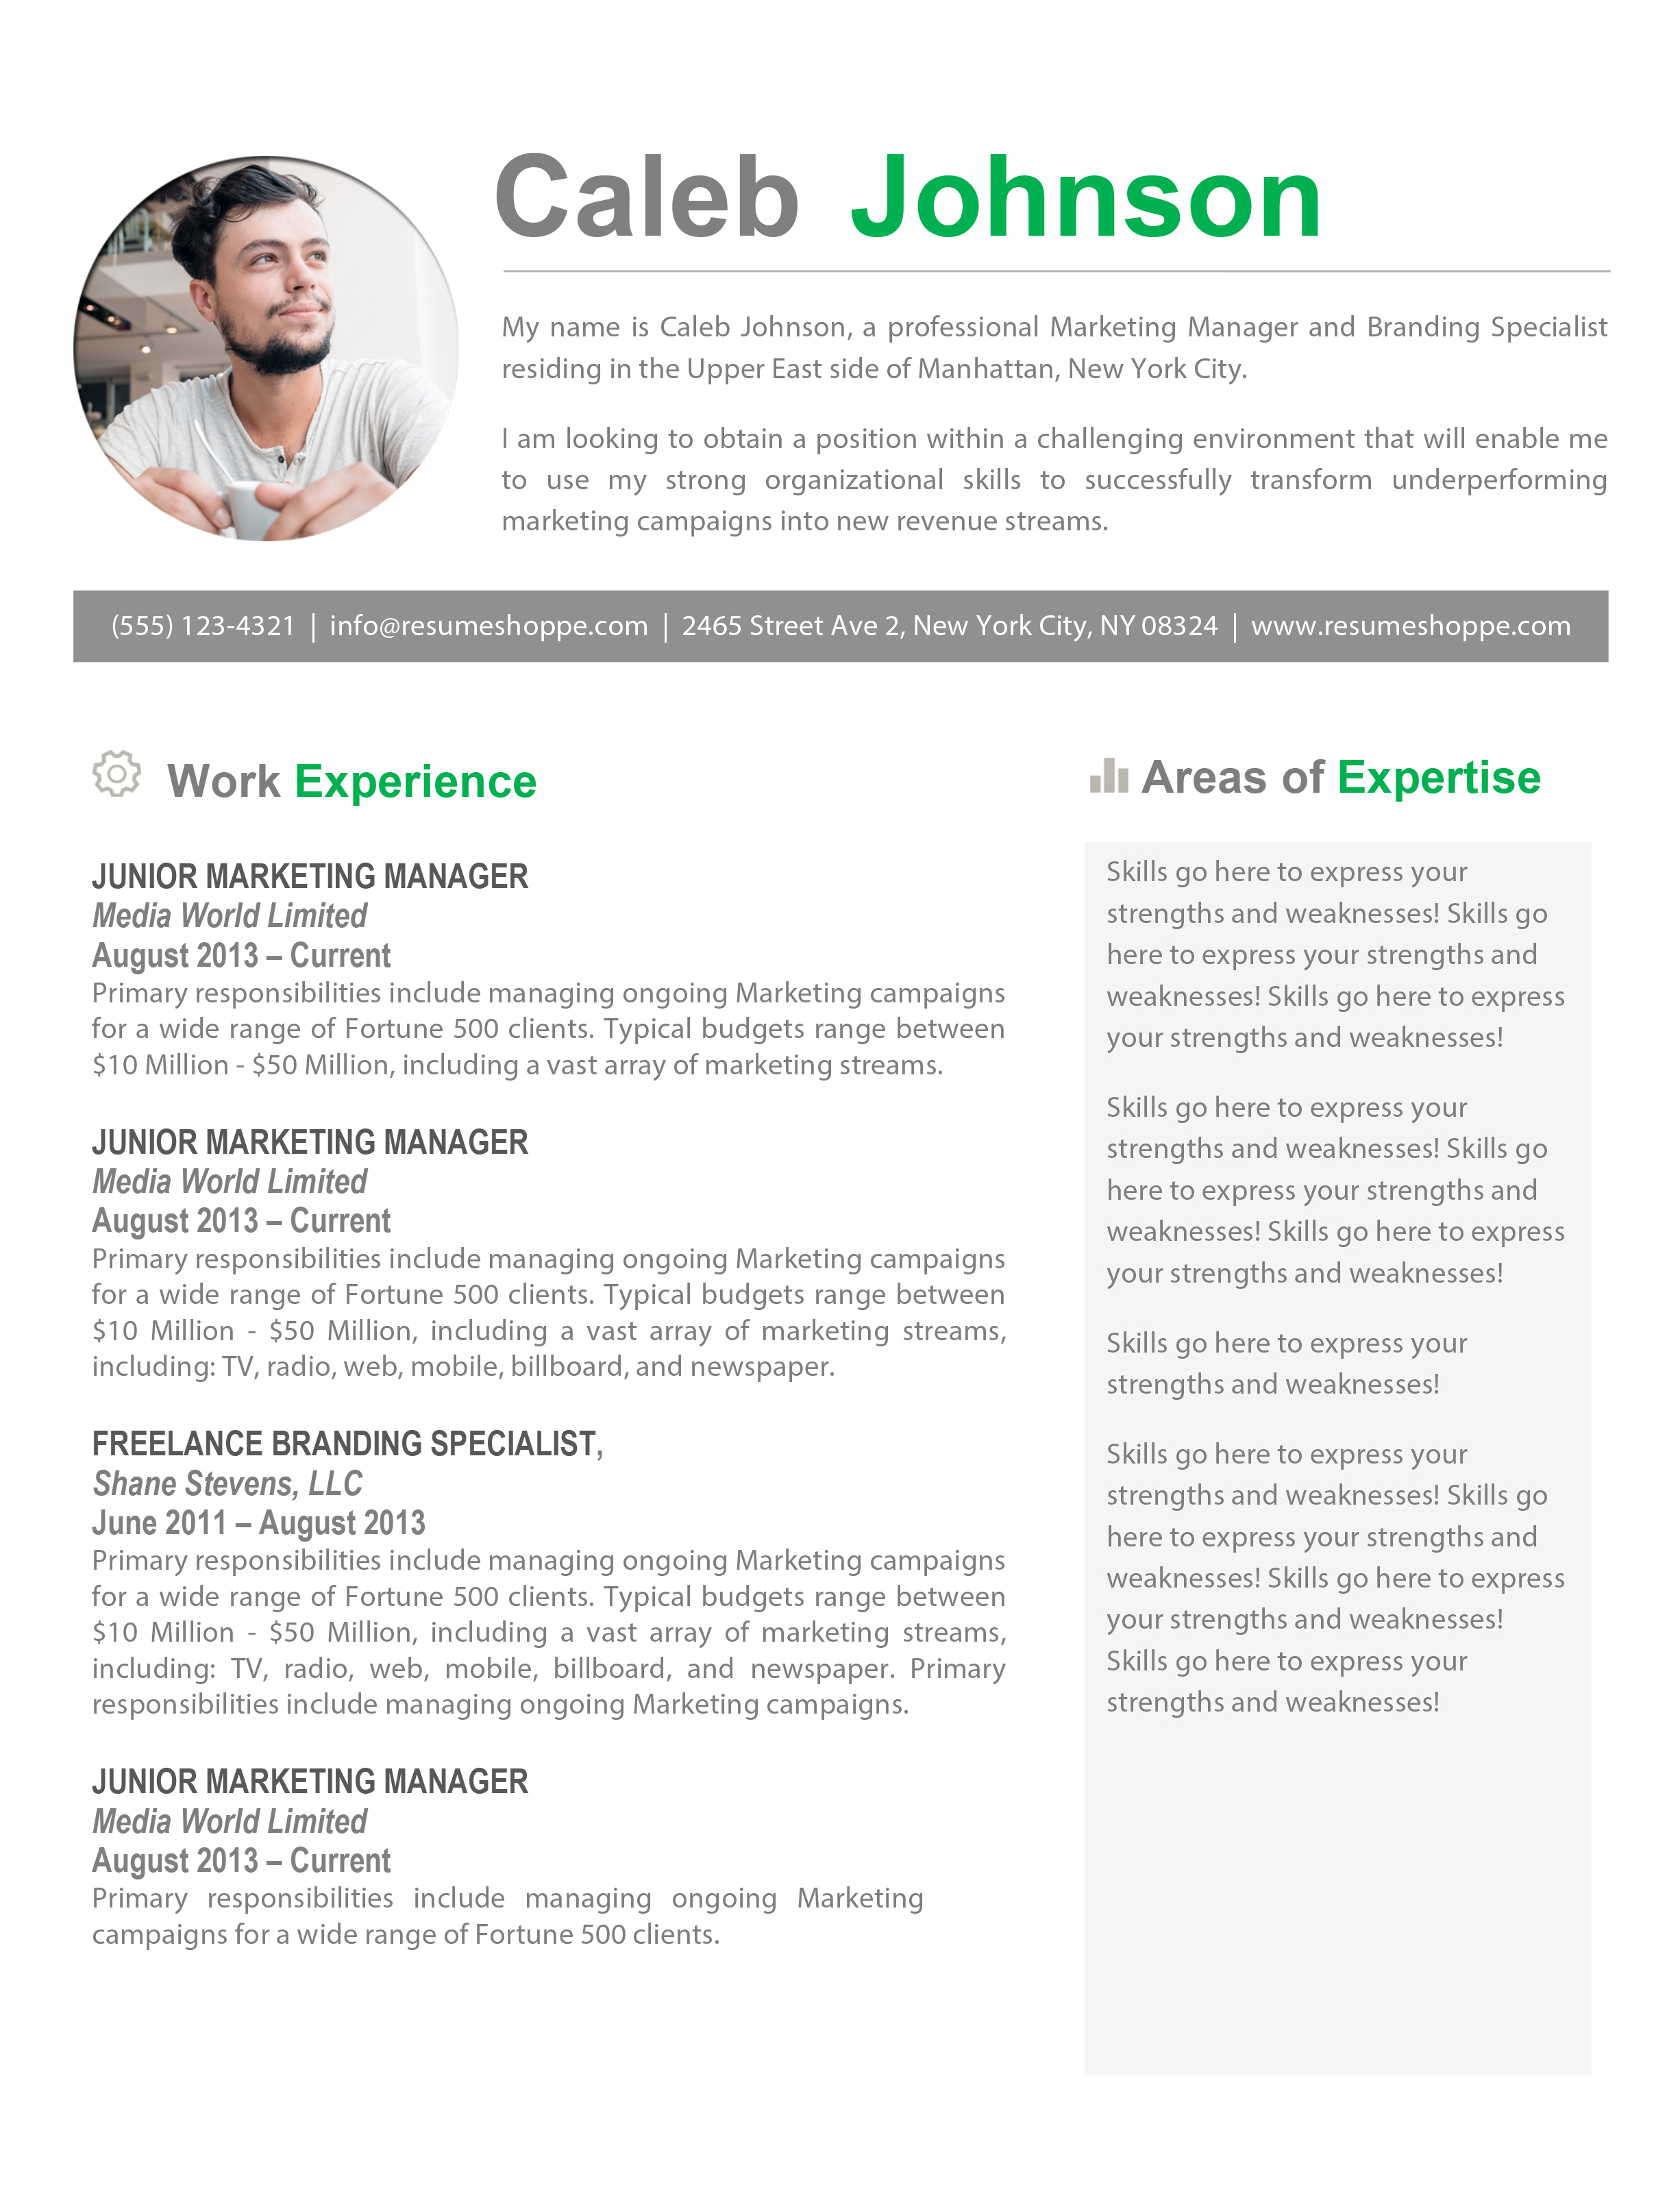 resume Resume Free download a free infographic resume no strings attached the caleb 1